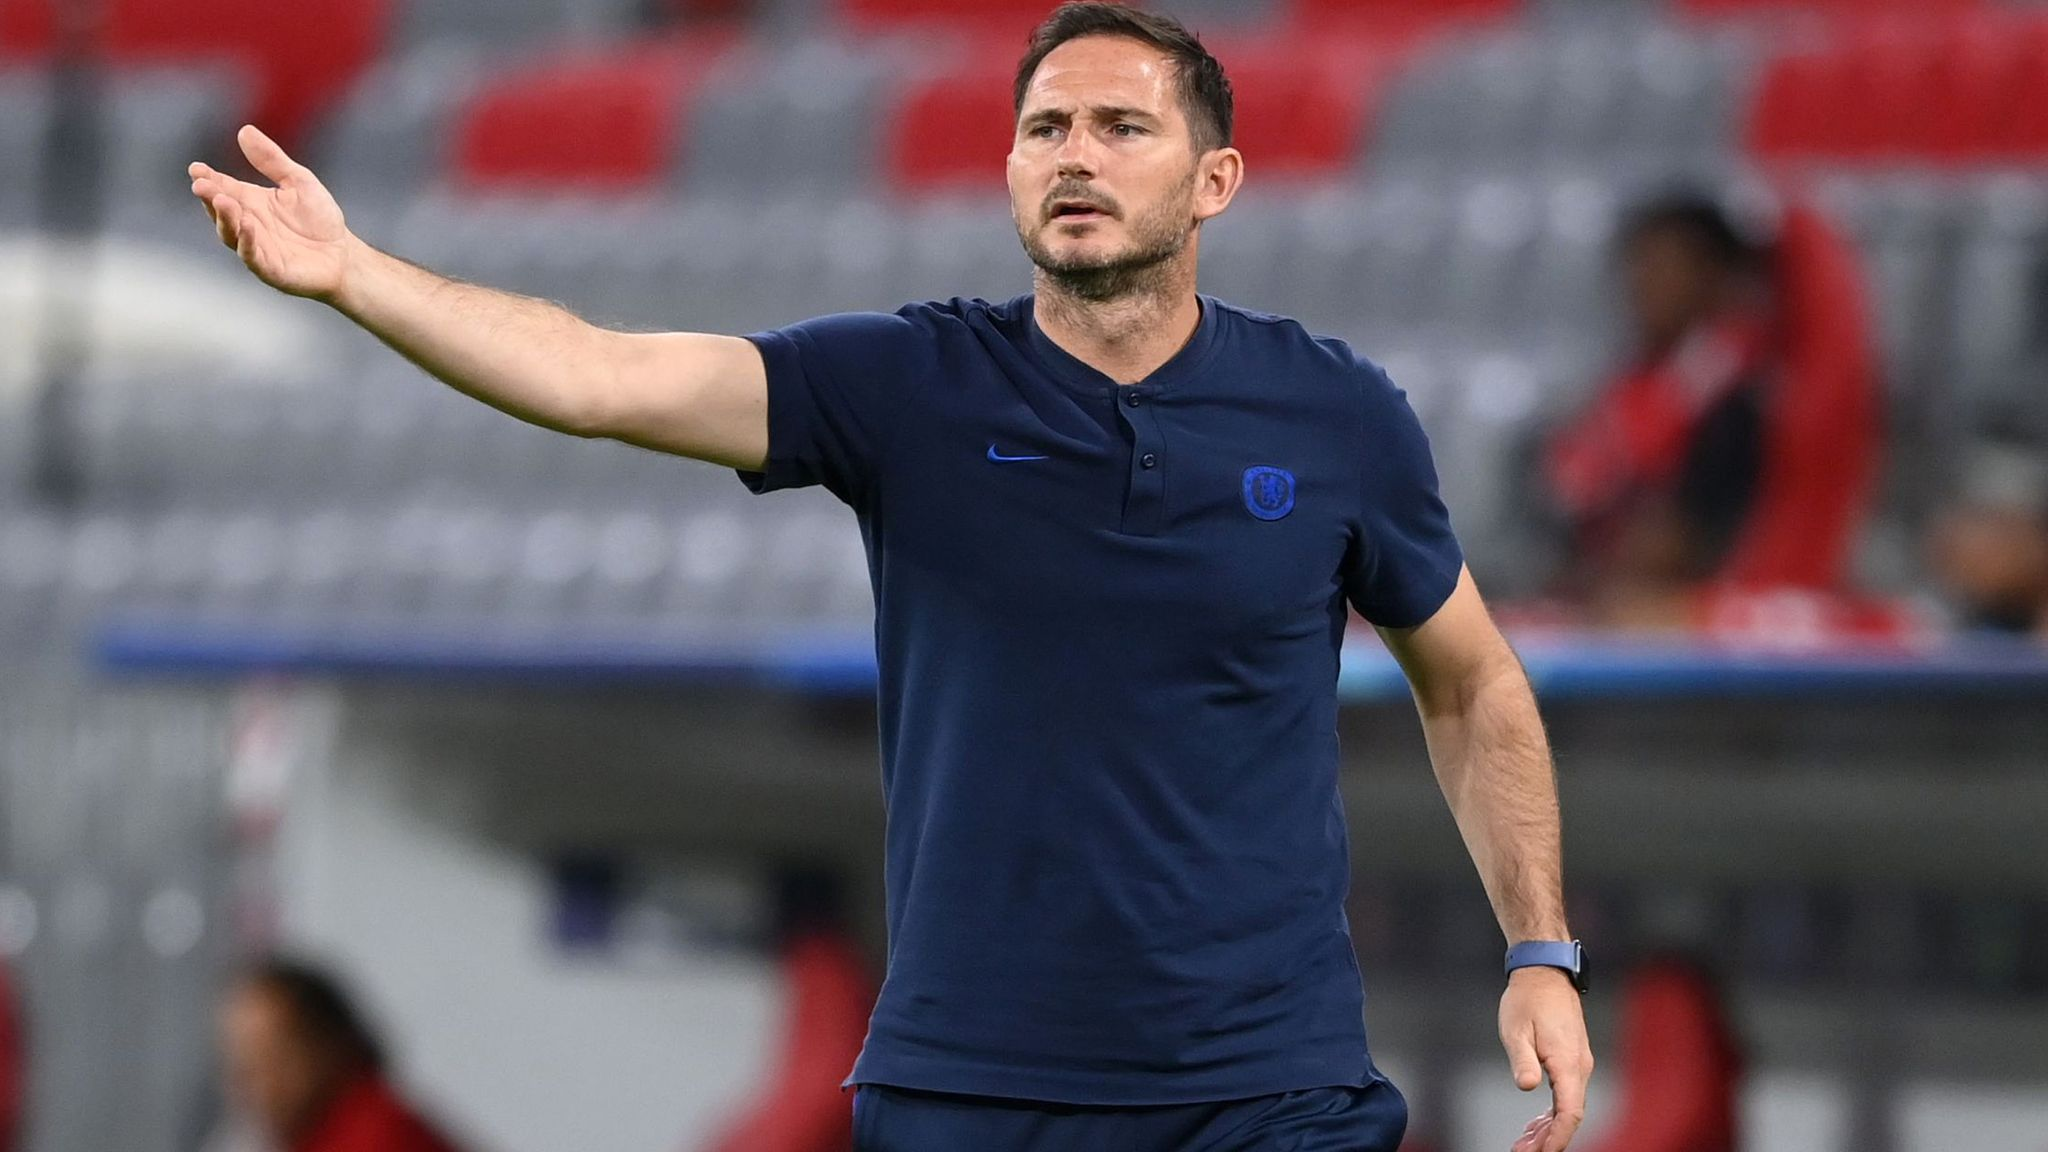 Frank Lampard endured two disappointing defeats to end his first season at Chelsea